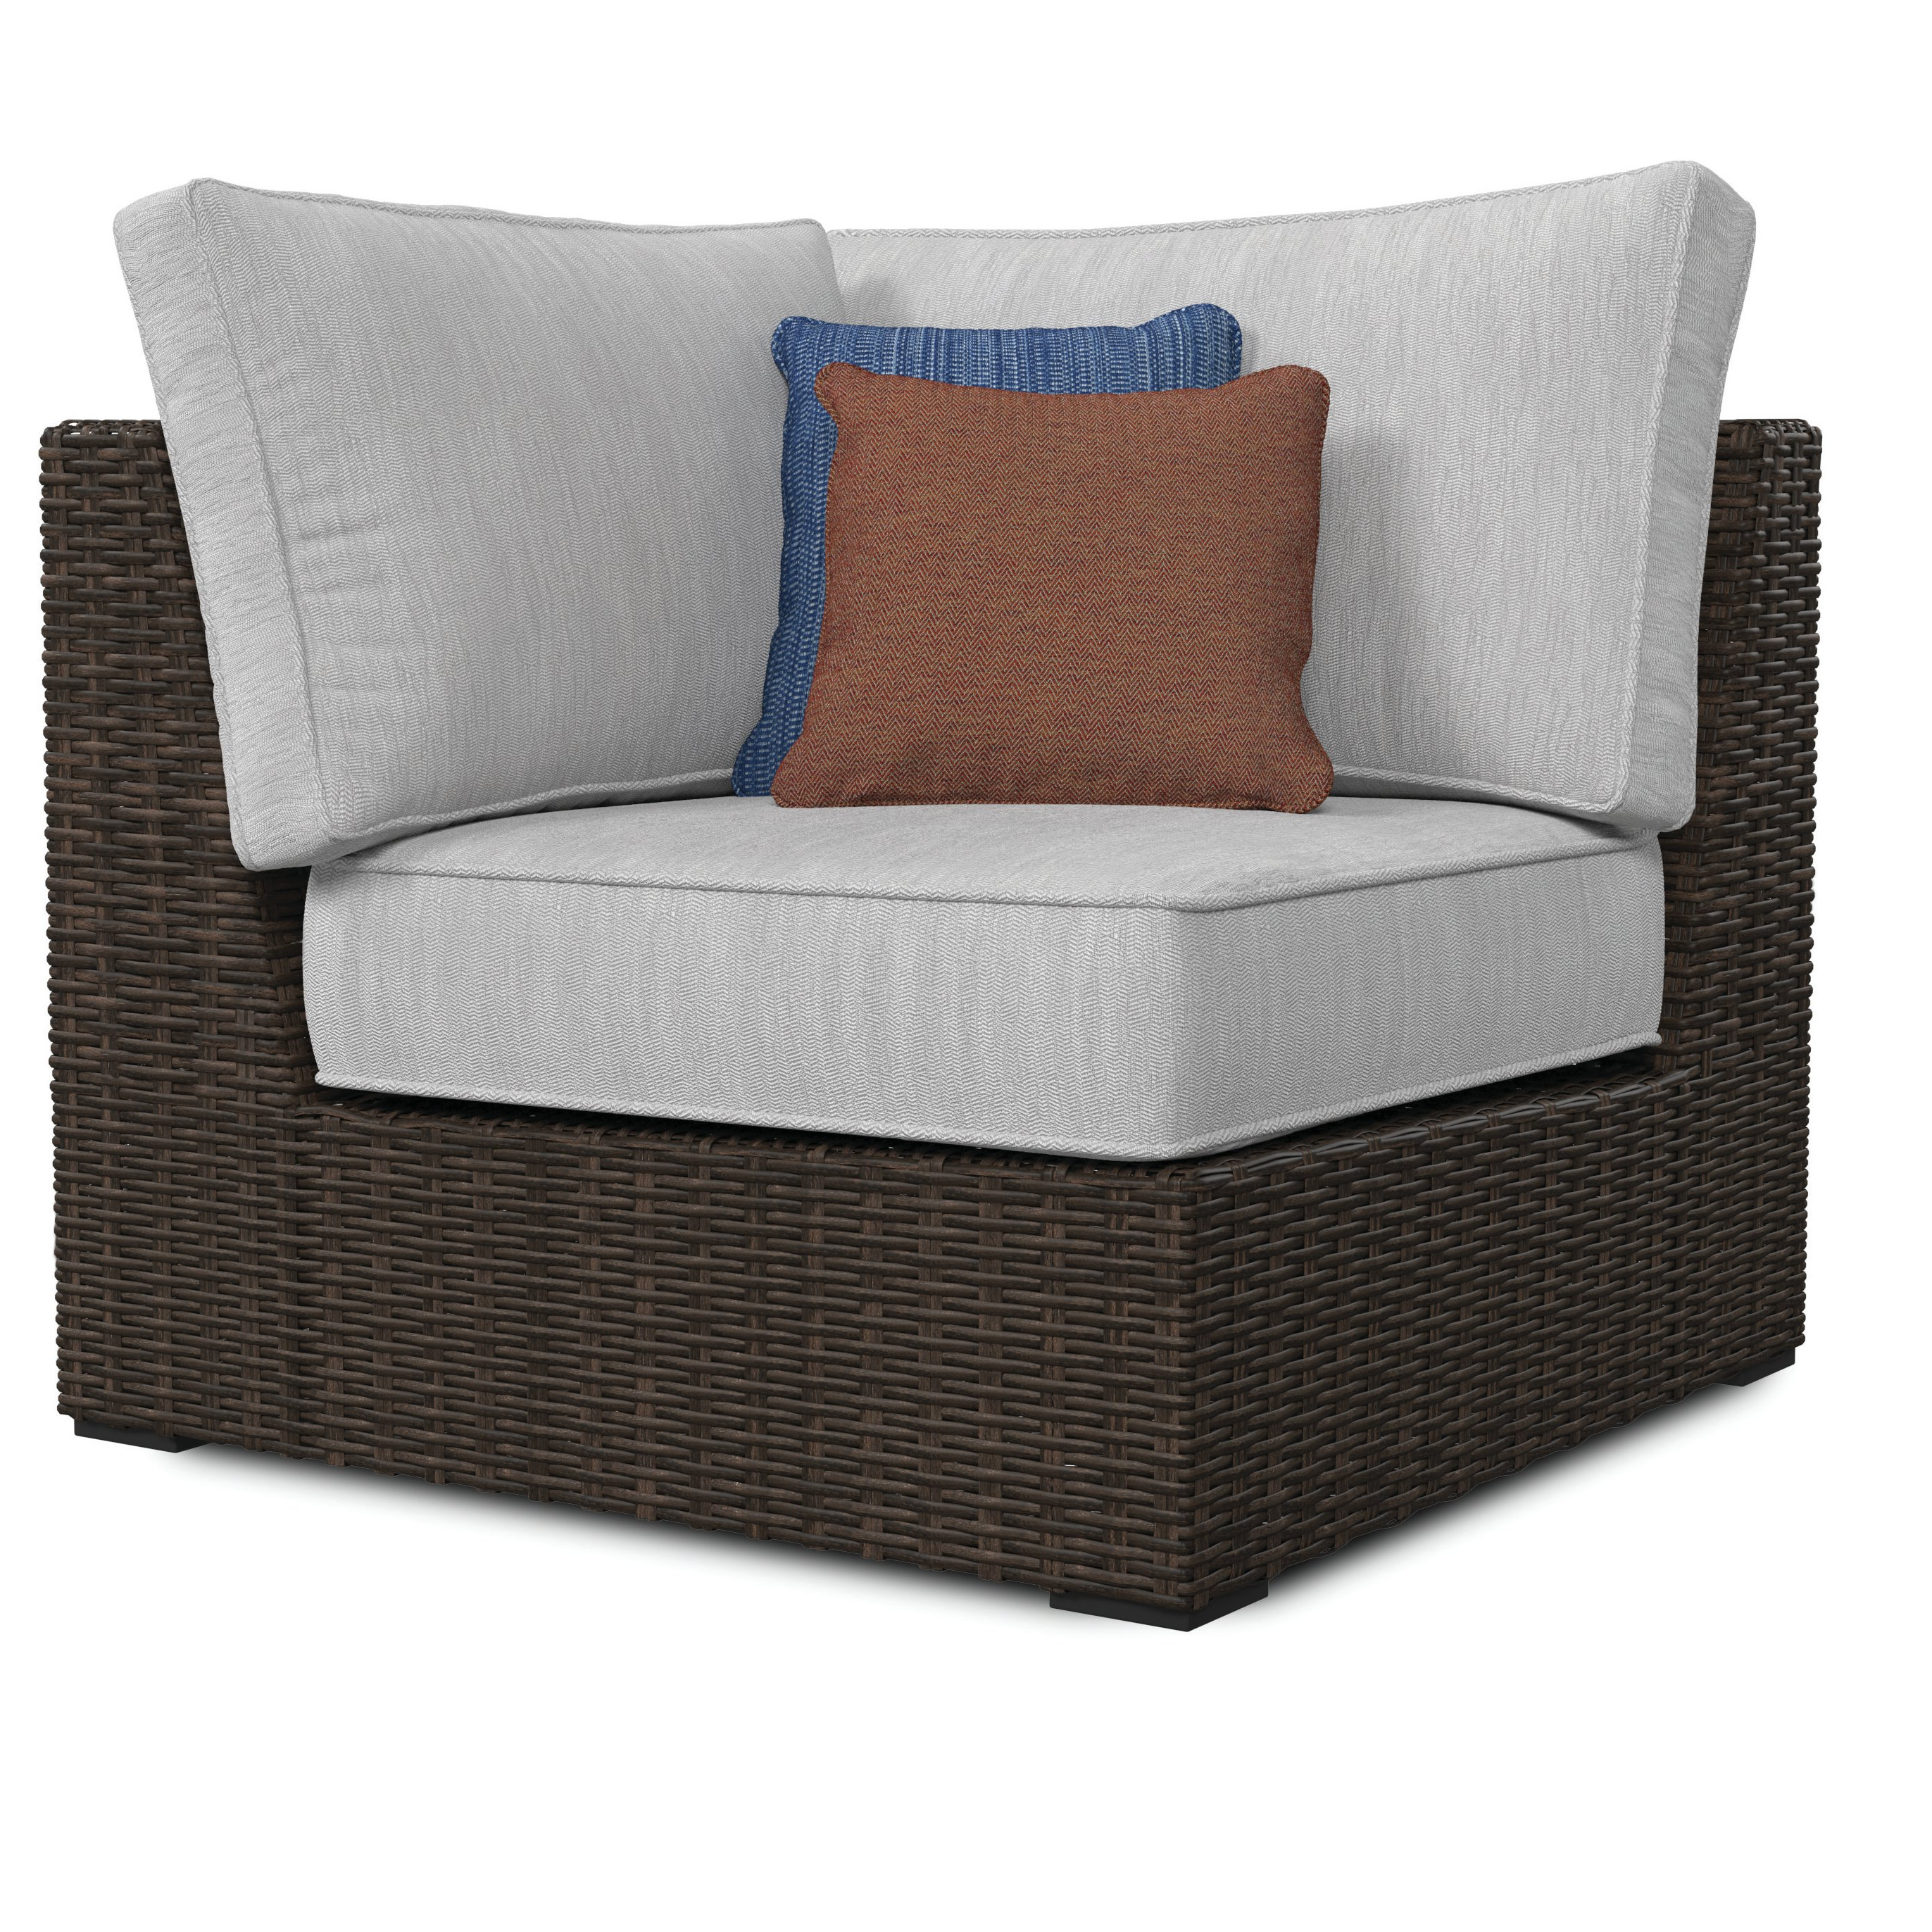 Joss & Main With Keever Patio Sofas With Sunbrella Cushions (View 9 of 20)